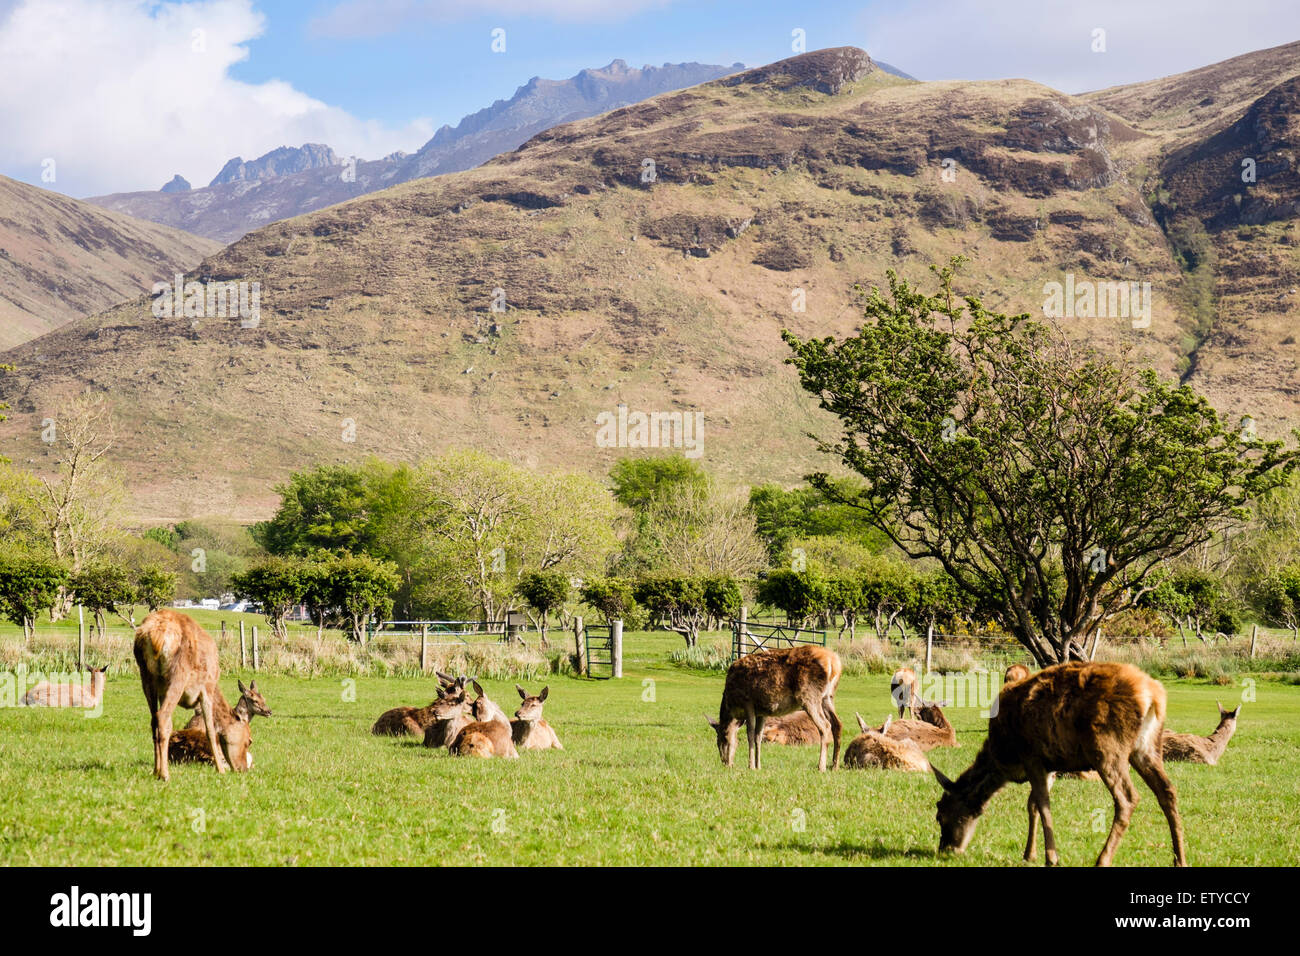 Scottish Red deer hinds (Cervus elaphus) grazing on golf course in valley. Lochranza Isle of Arran Western Isles - Stock Image